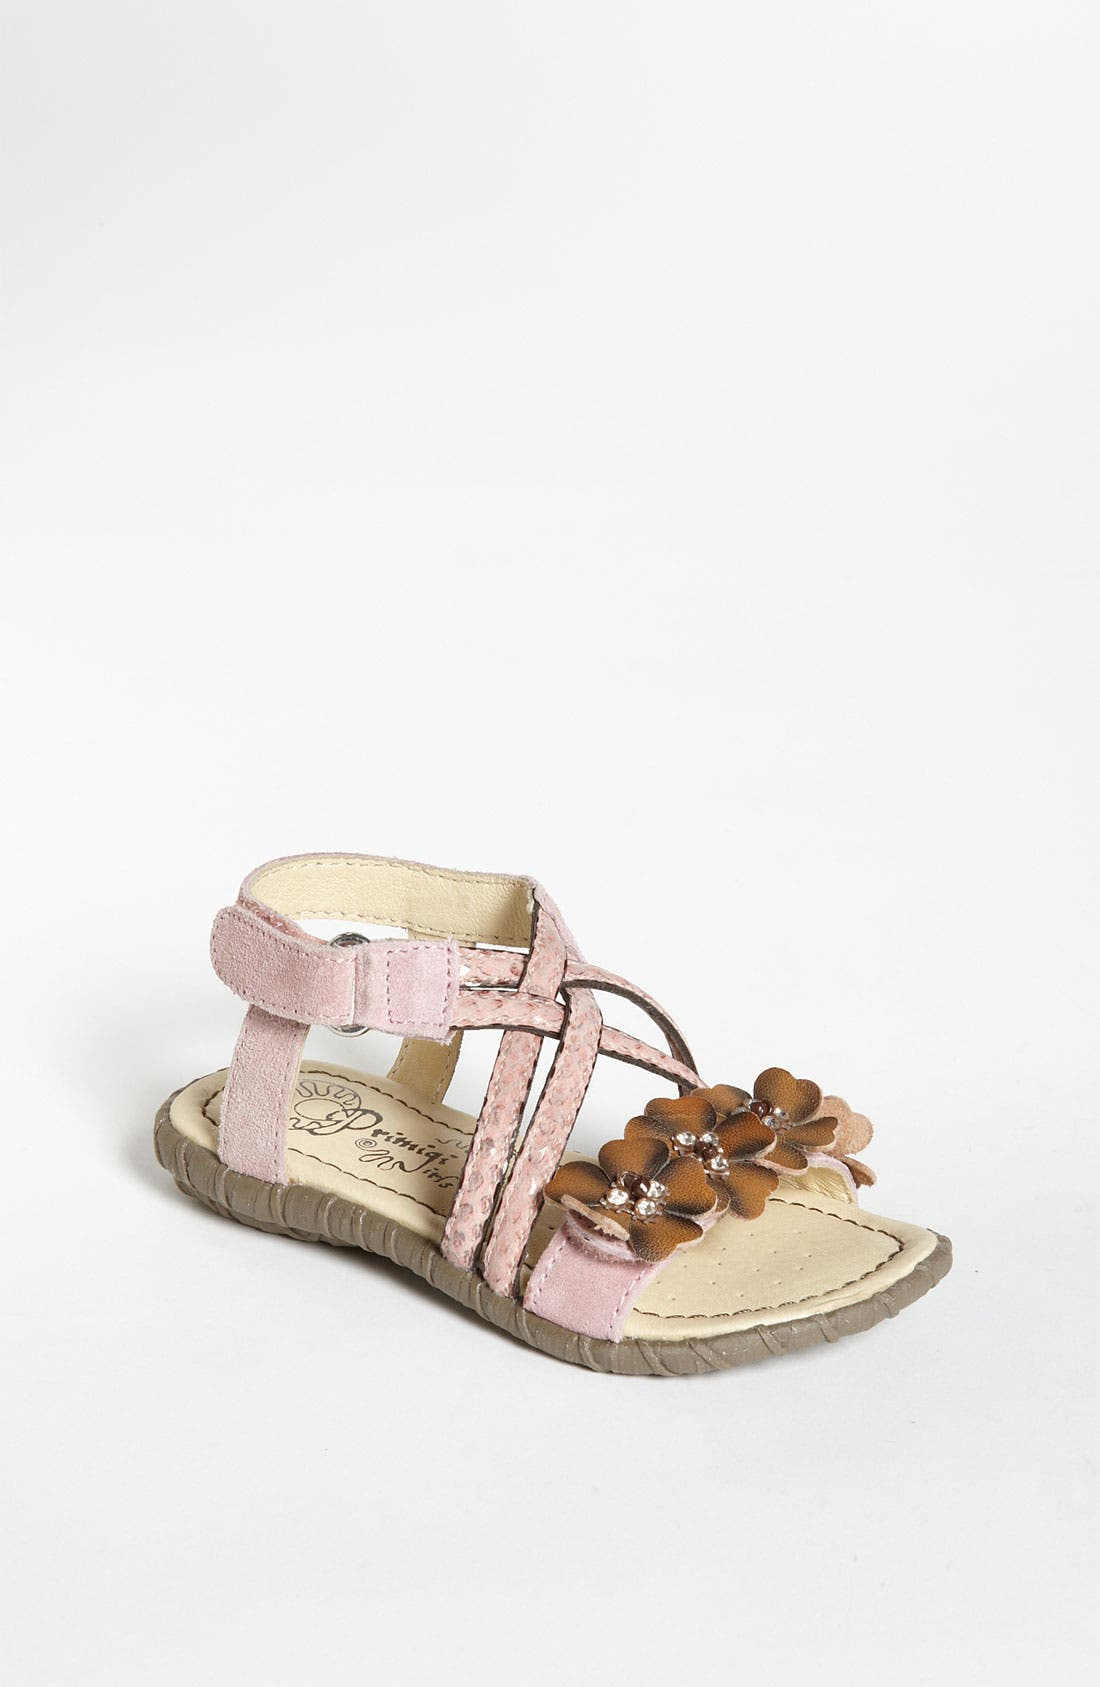 Alternate Image 1 Selected - Primigi 'Genesia' Sandal (Toddler)